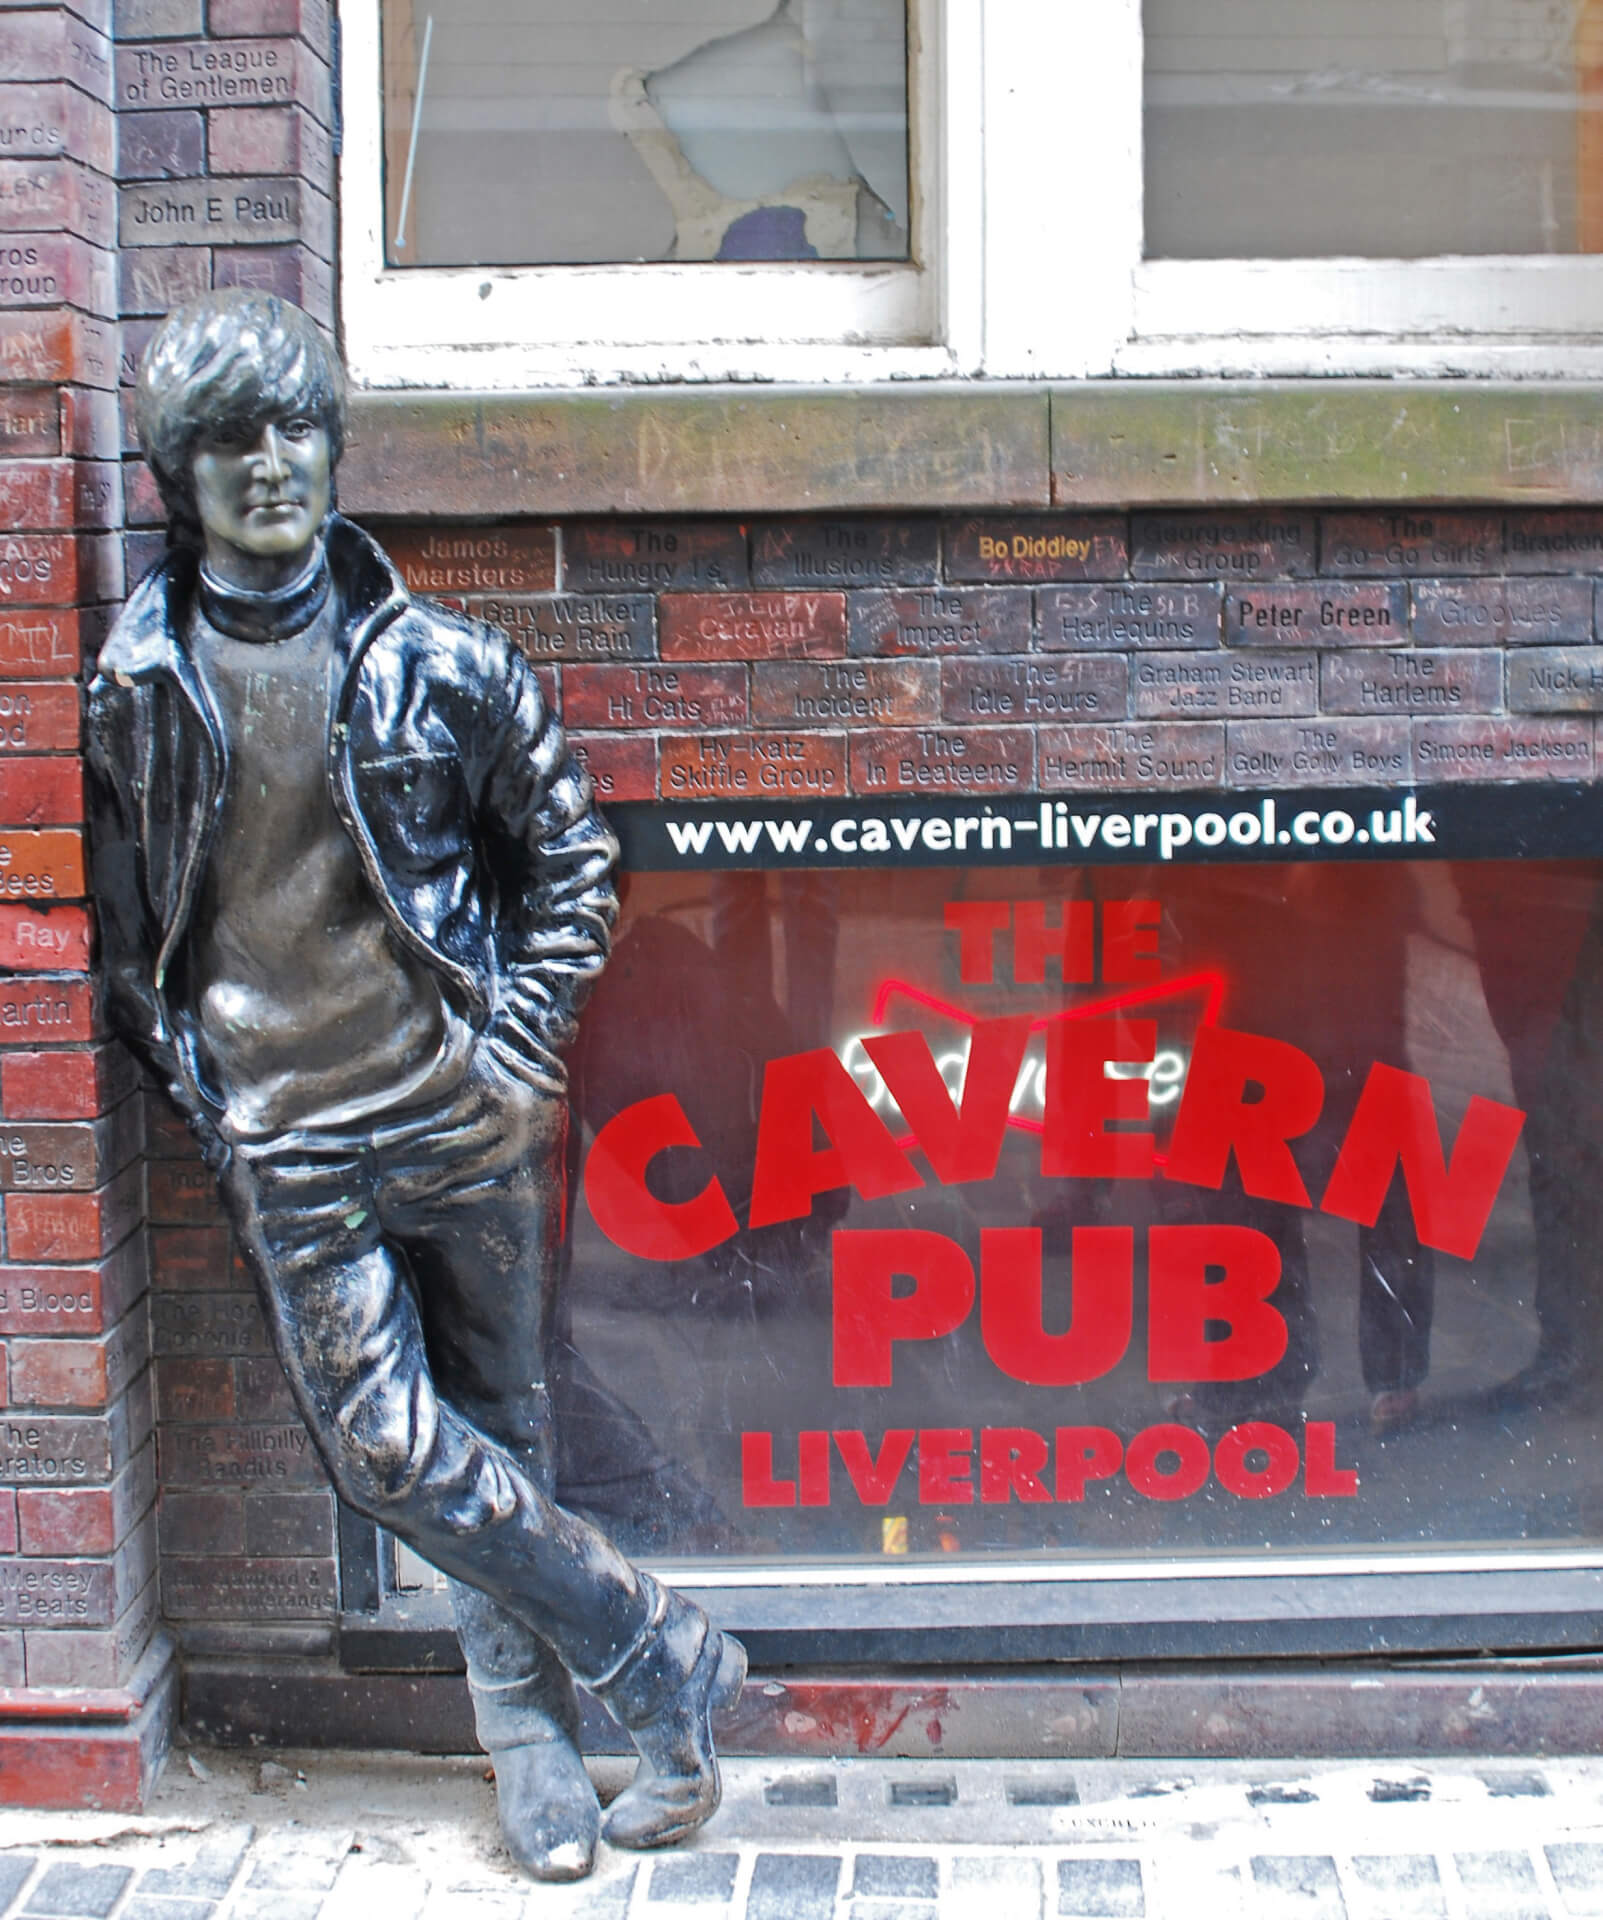 The Cavern Club is a rock and roll club at 10 Mathew Street, Liverpool, England, where Brian Epstein was introduced to the Beatles on 9 November 1961. The club opened on January 16, 1957. From: http://en.wikipedia.org/wiki/Cavern_Club